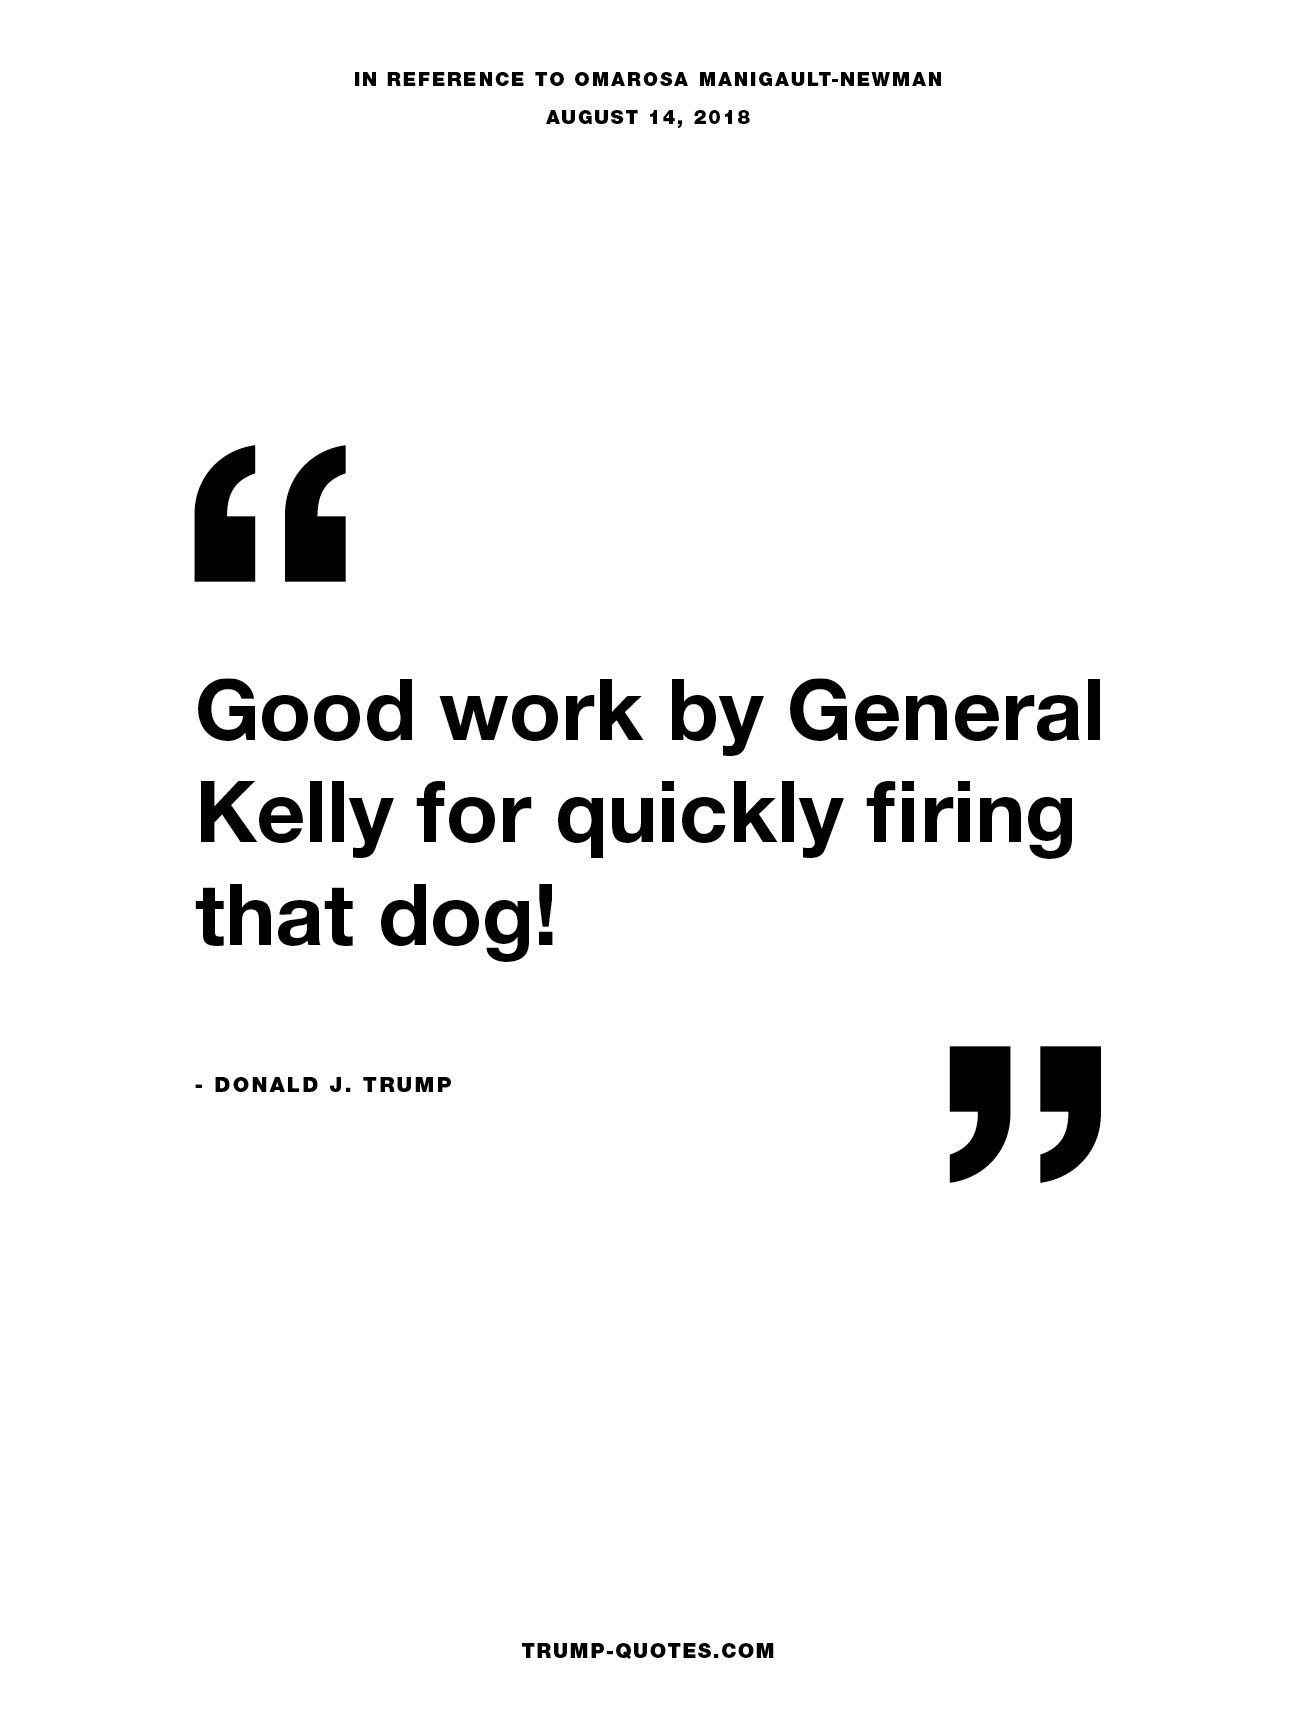 Good work by General Kelly  for quickly firing that dog!